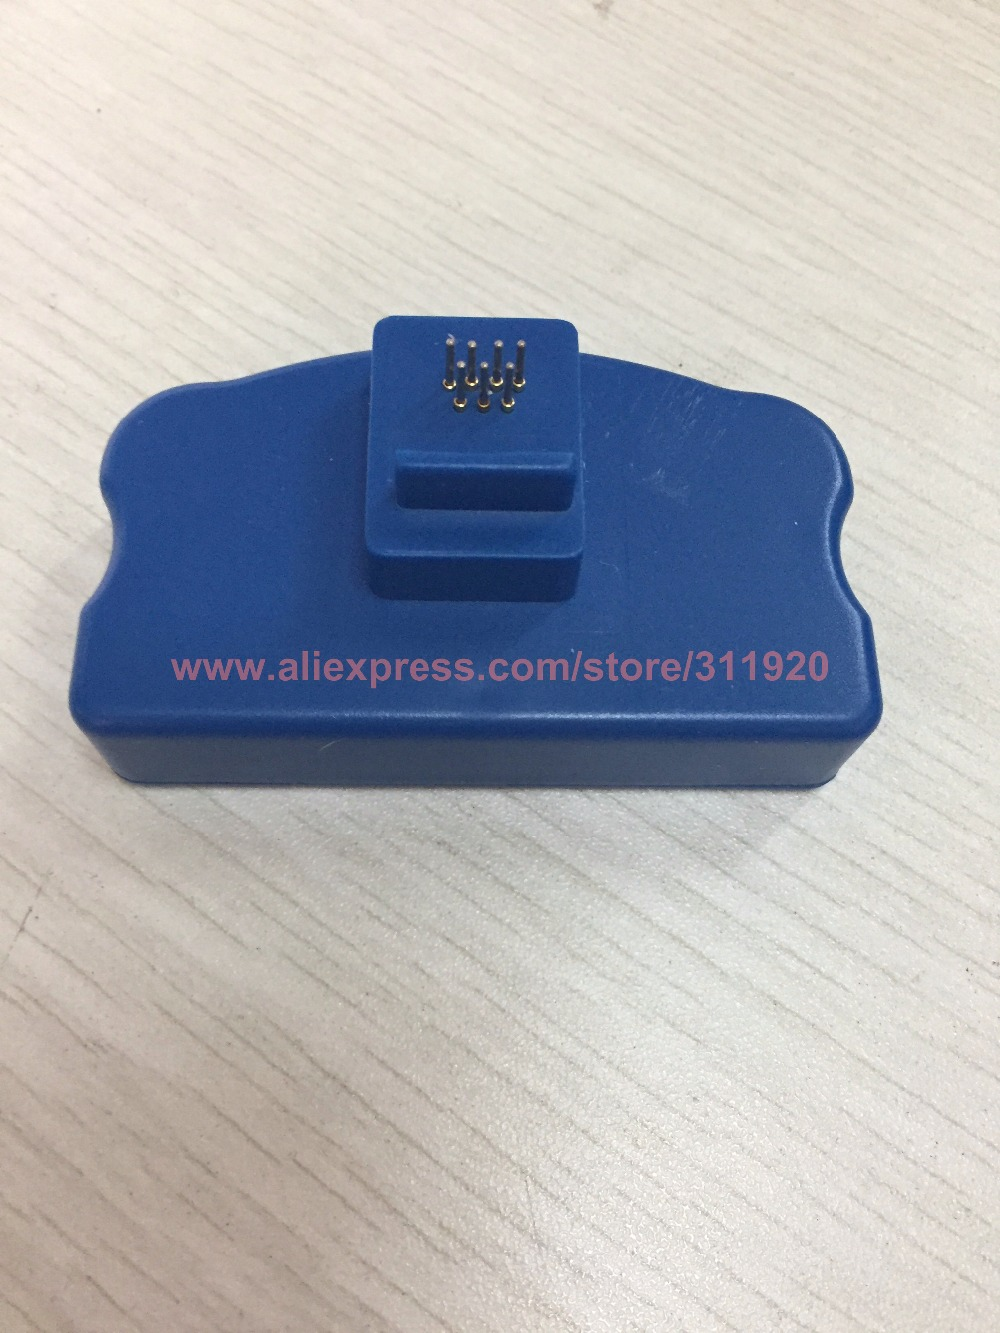 Maintenance Tank Chip Resetter For Epson for epson 7700 9700 7710 9710 Printer maintenance tank chip resetter for epson for epson 7700 9700 7710 9710 printer